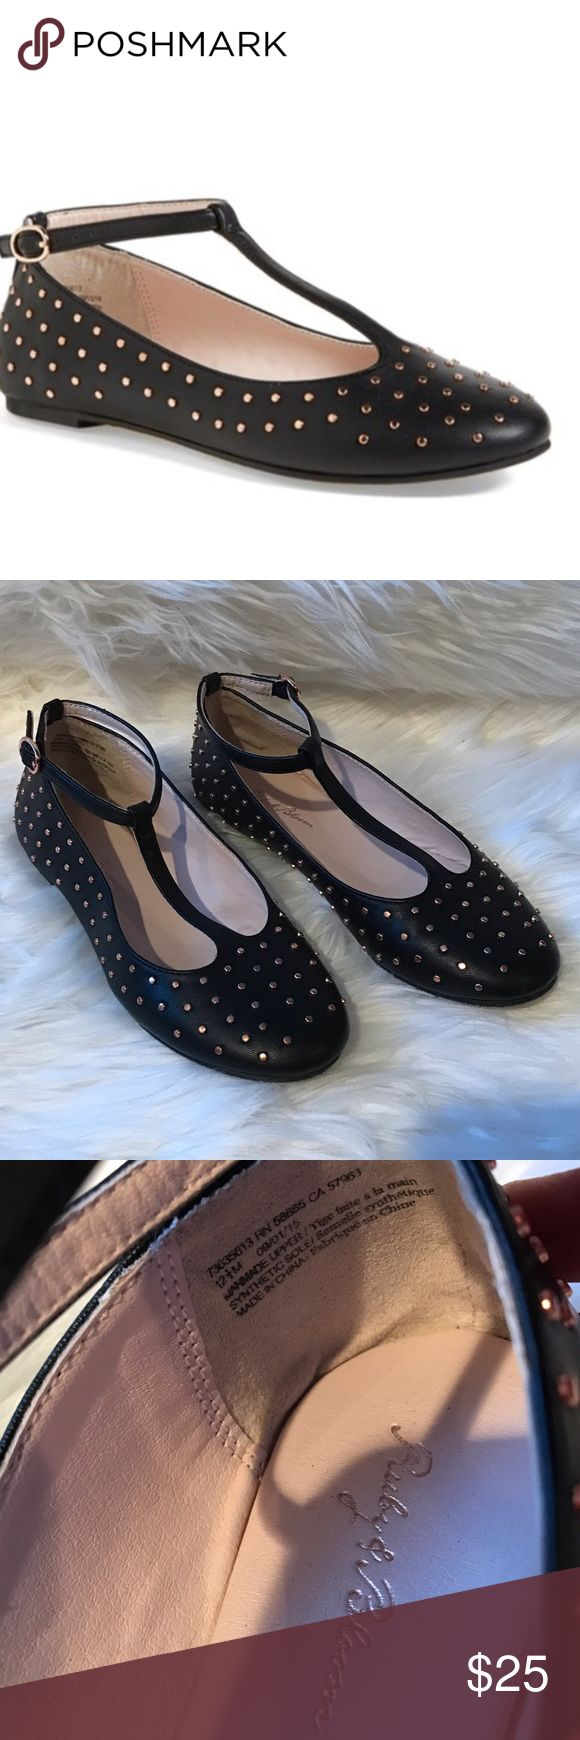 Ruby & Bloom T Strap Rose Gold Studded Flats Super cute and trendy little girl ballet flats! My daughter wore them once for 2 hours, and then grew out of them. They are in perfect condition! 🖤 ruby & bloom Shoes Dress Shoes